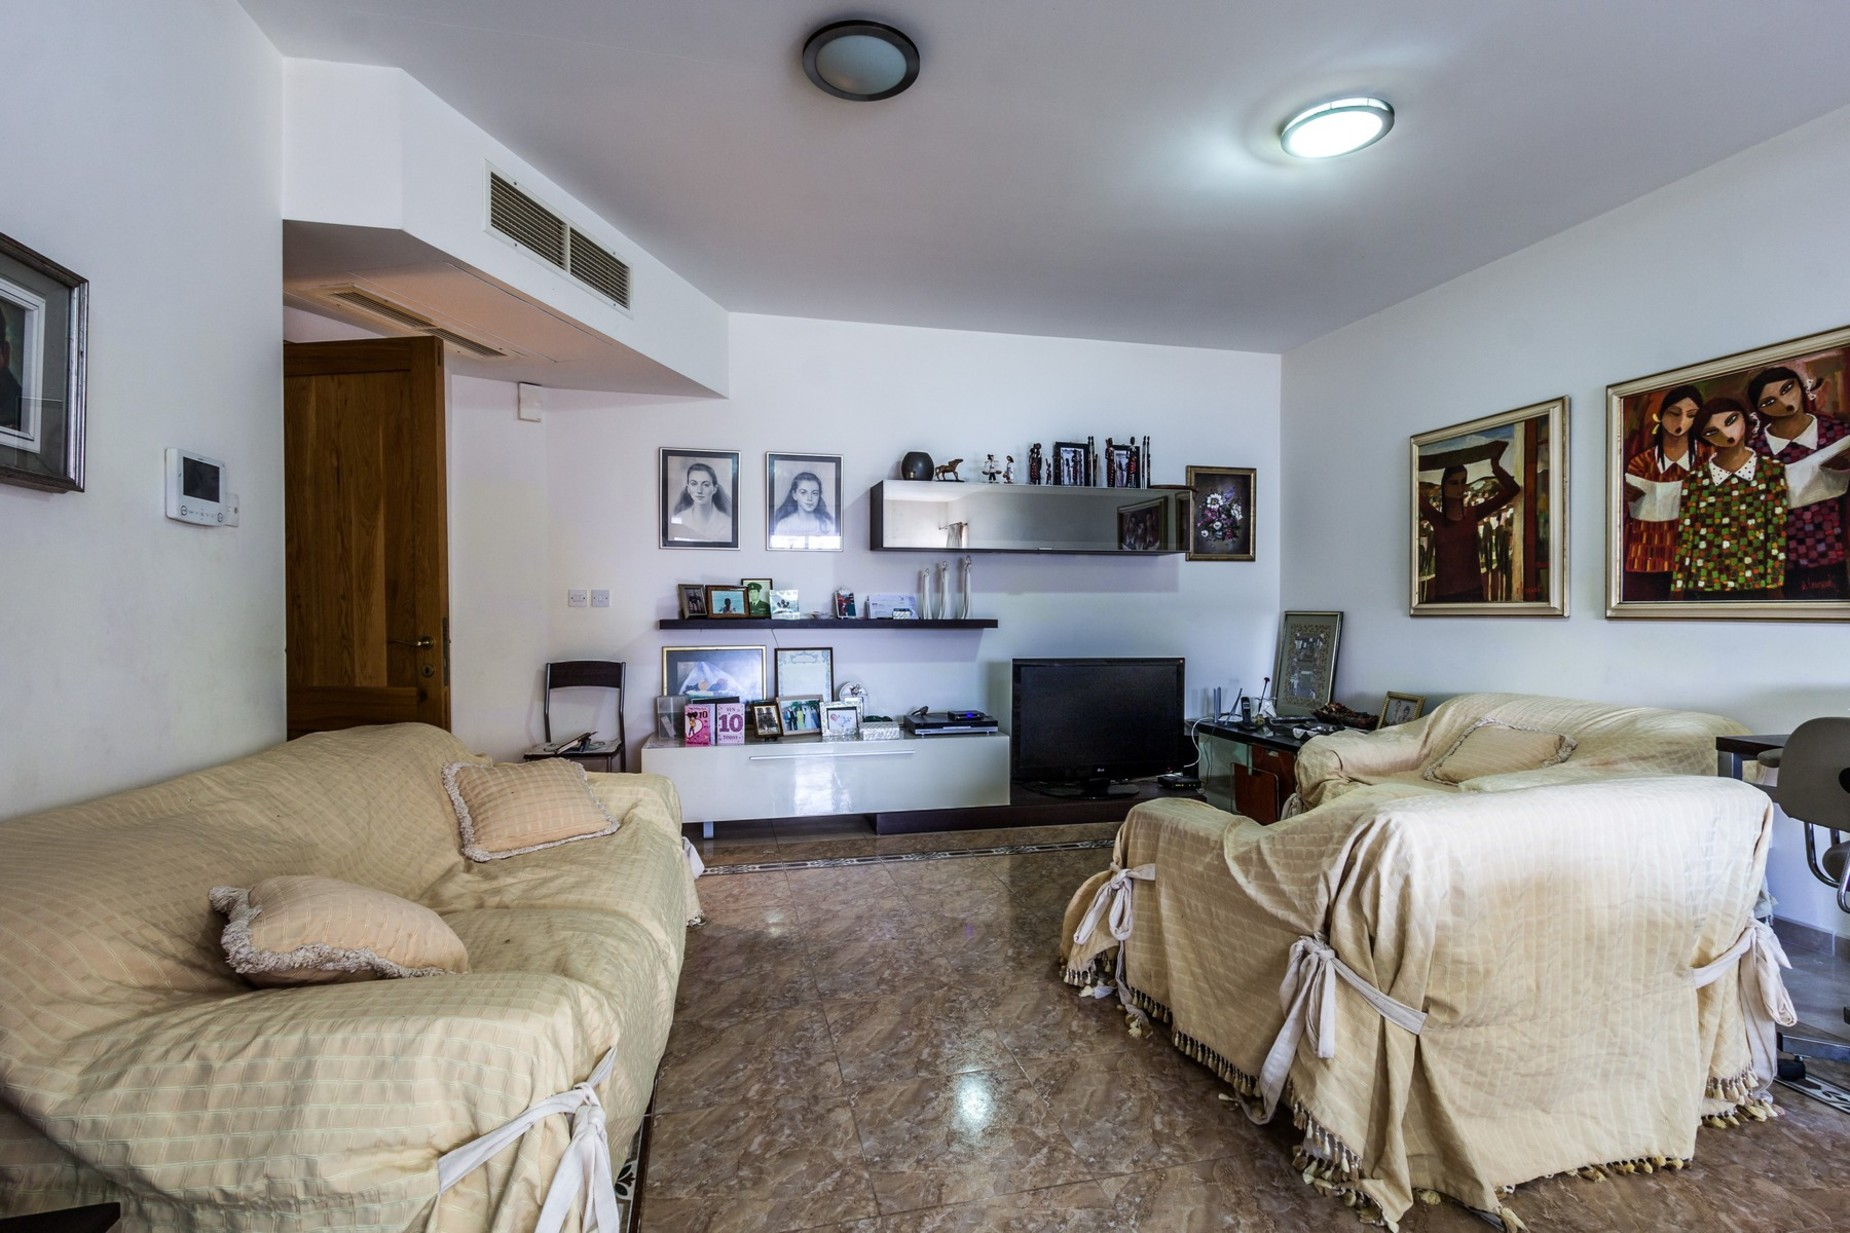 3 bed Apartment For Sale in Rabat, Rabat - thumb 13